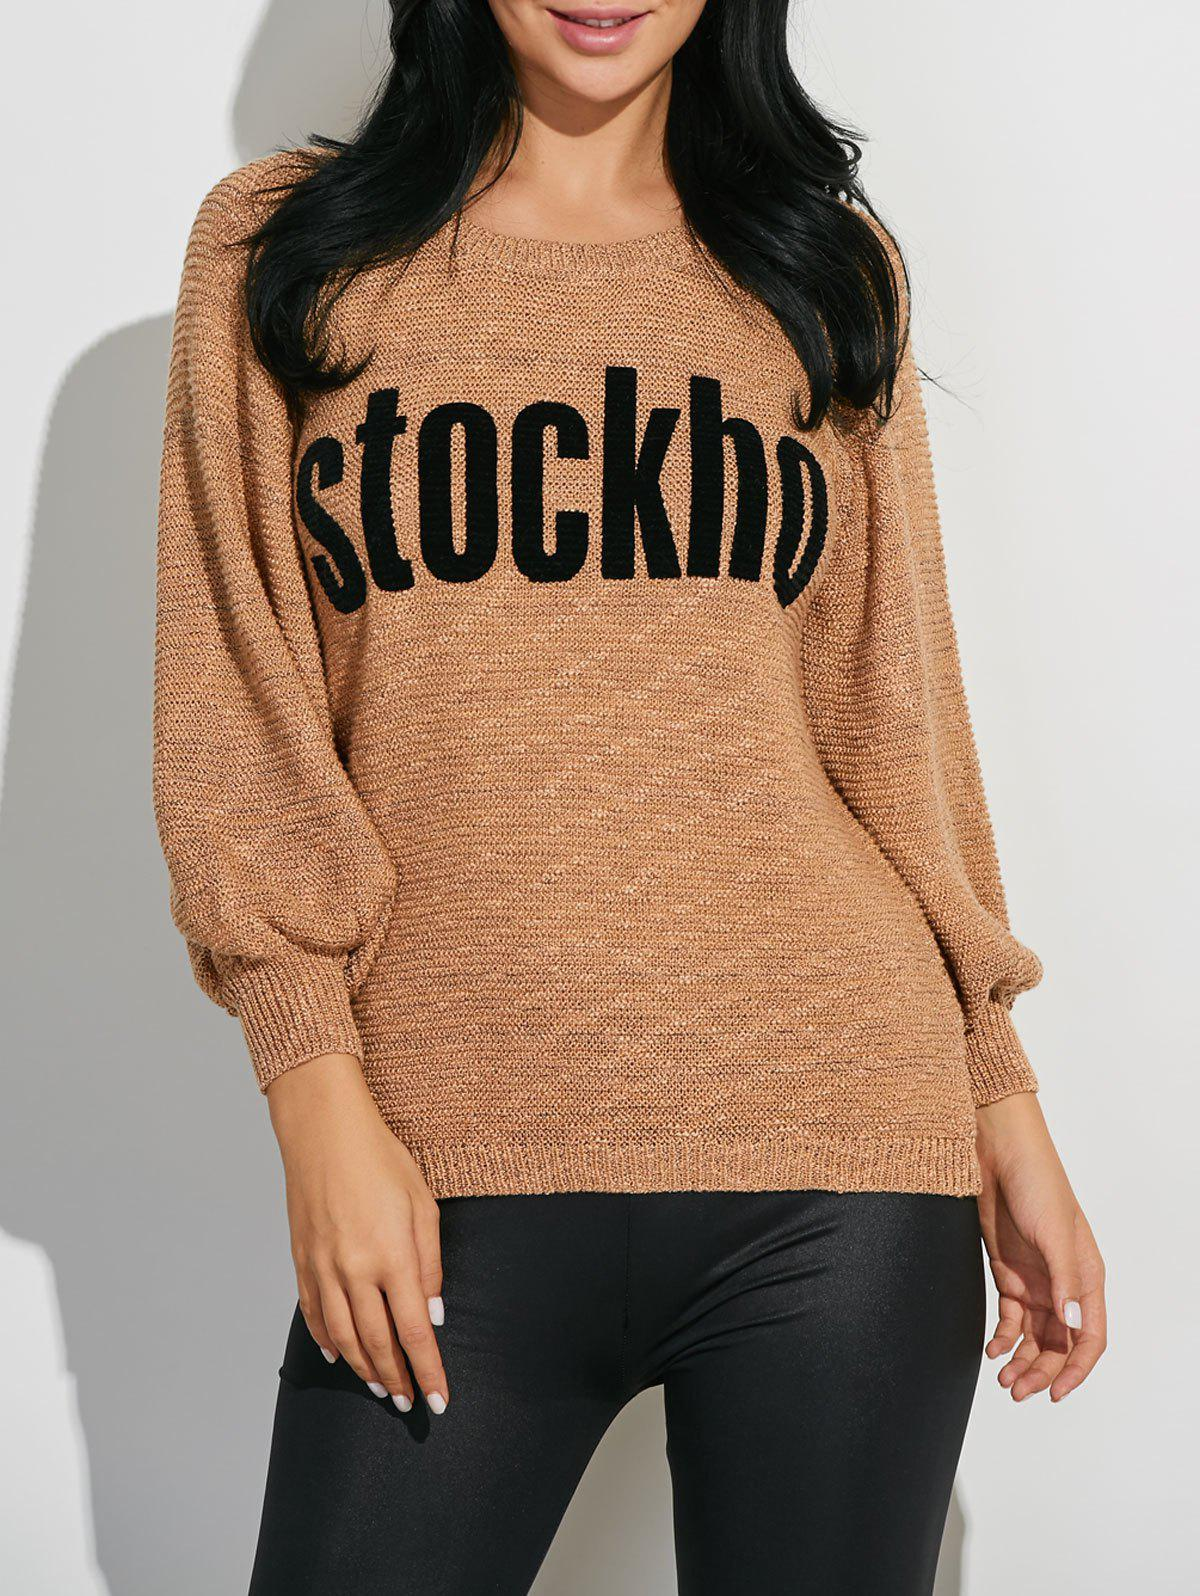 Sale Stockho Graphic Ribbed Knitwear